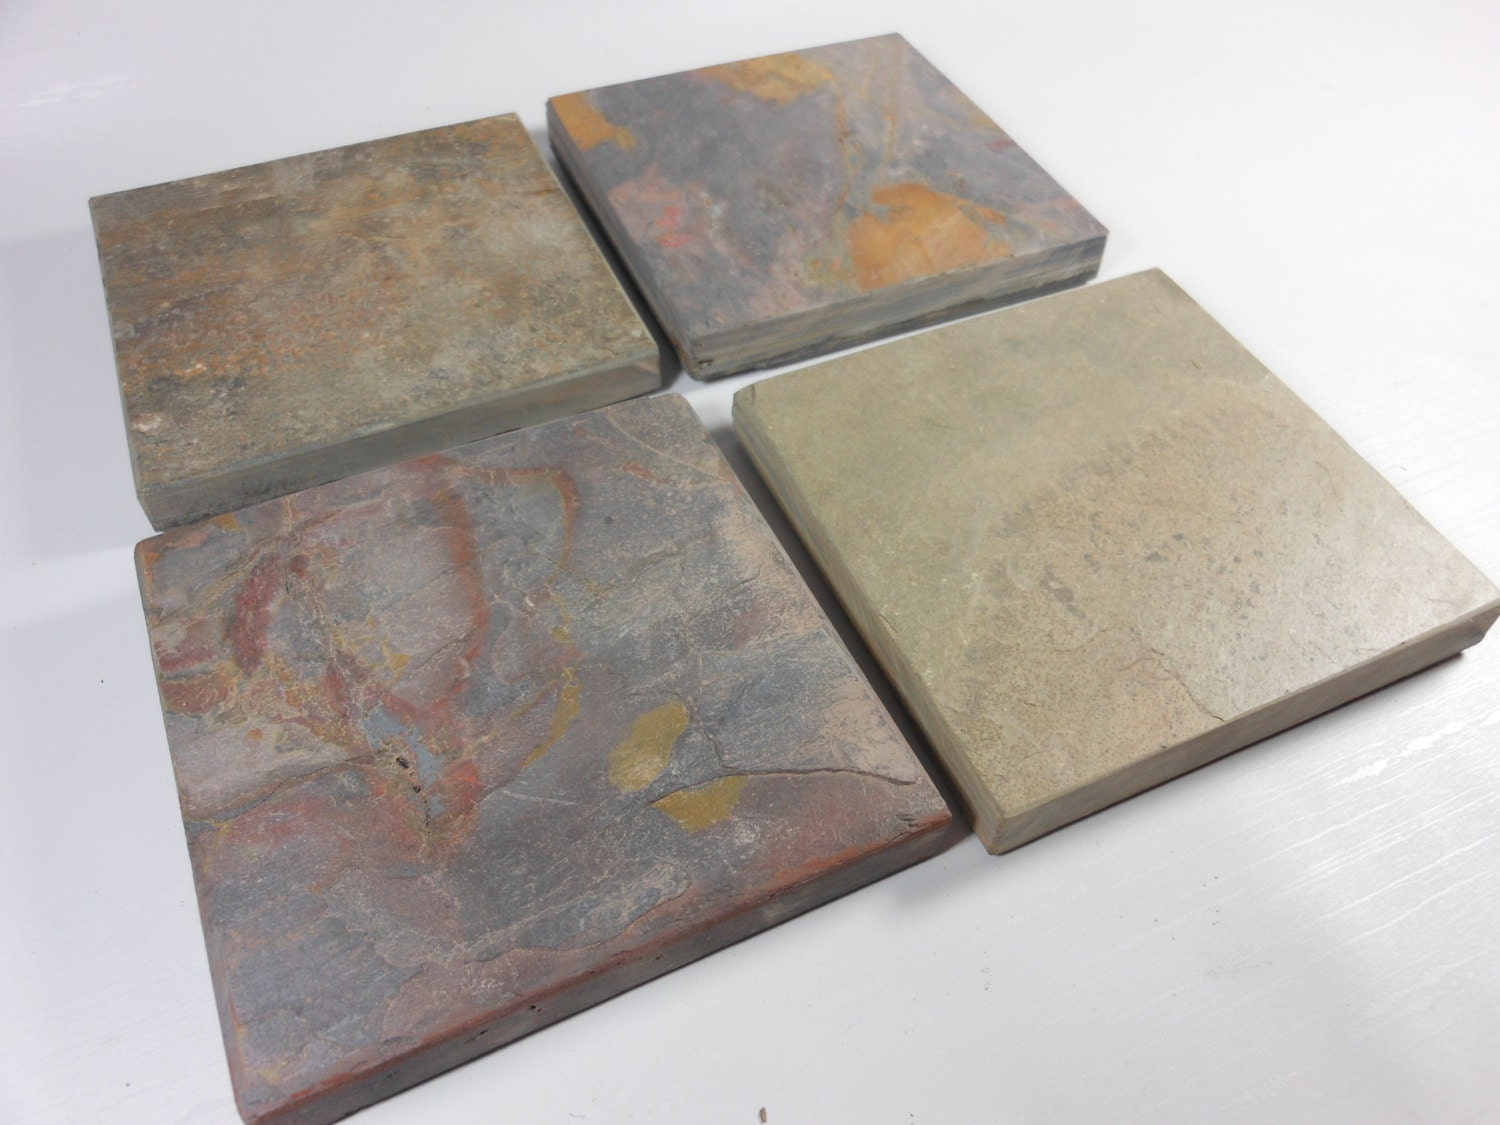 8 natural slate coasters assorted colors heavy absorbent - Stone absorbent coasters ...